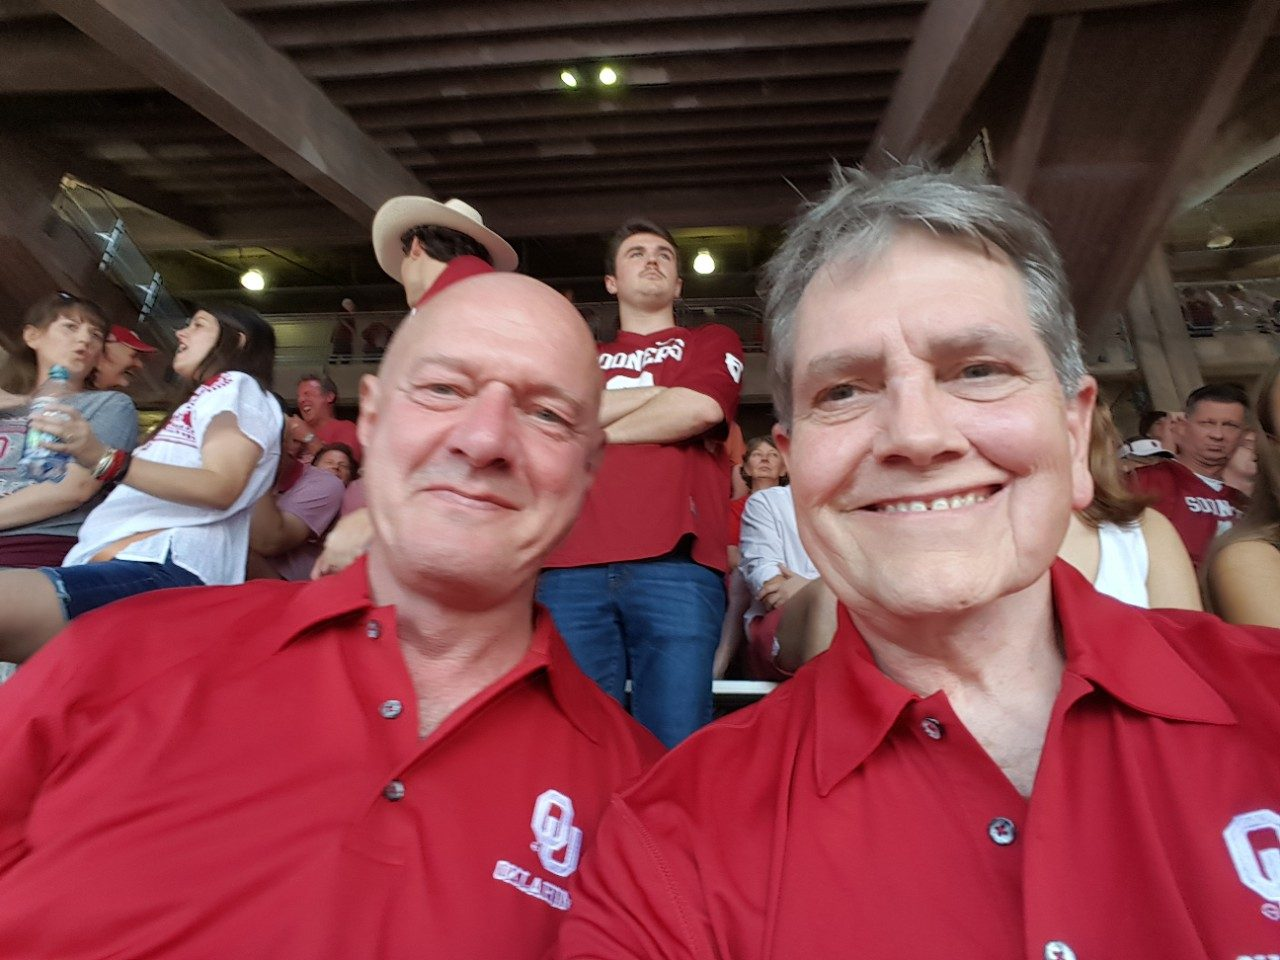 Acinic cell carcinoma survivor Keith Taggart (right) with his partner, Greg Stipp